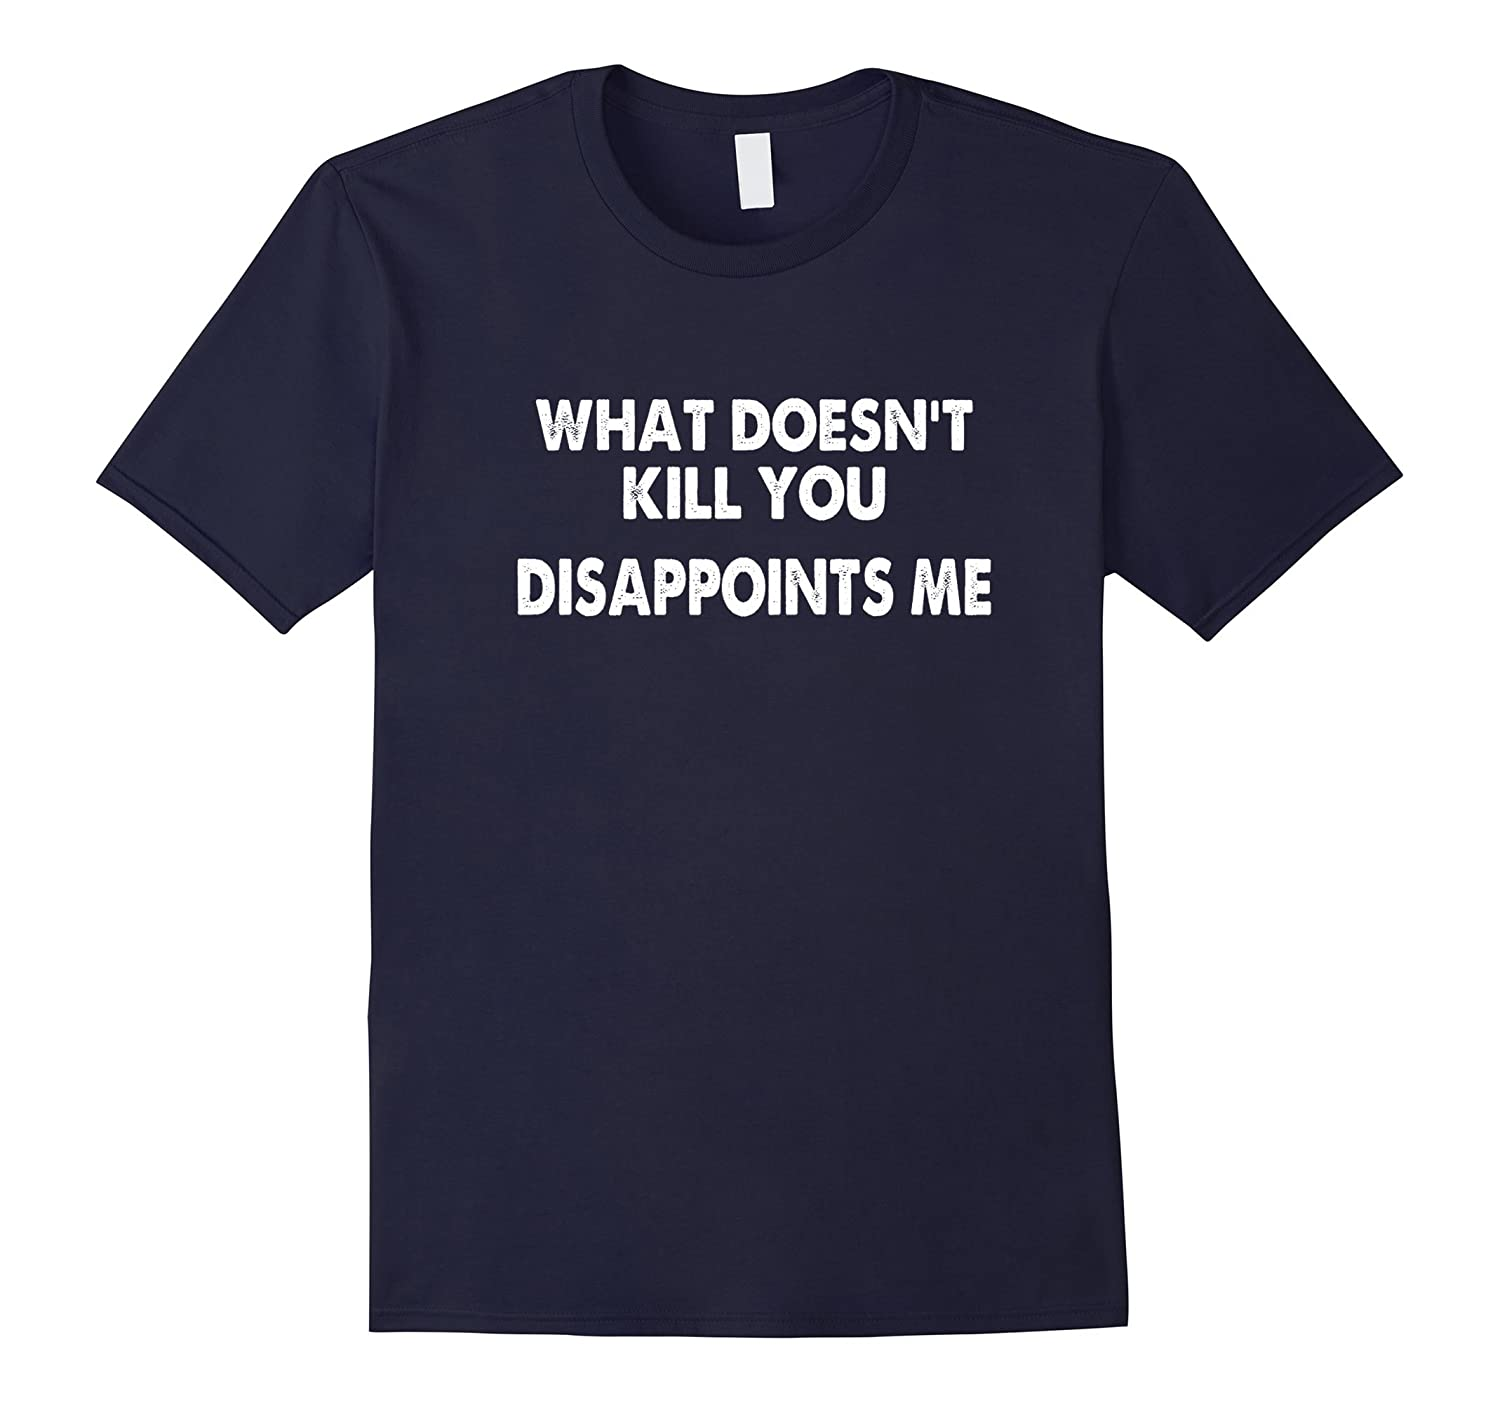 What Doesn't Kill You Disappoints Me Funny T-Shirt-ah my shirt one gift